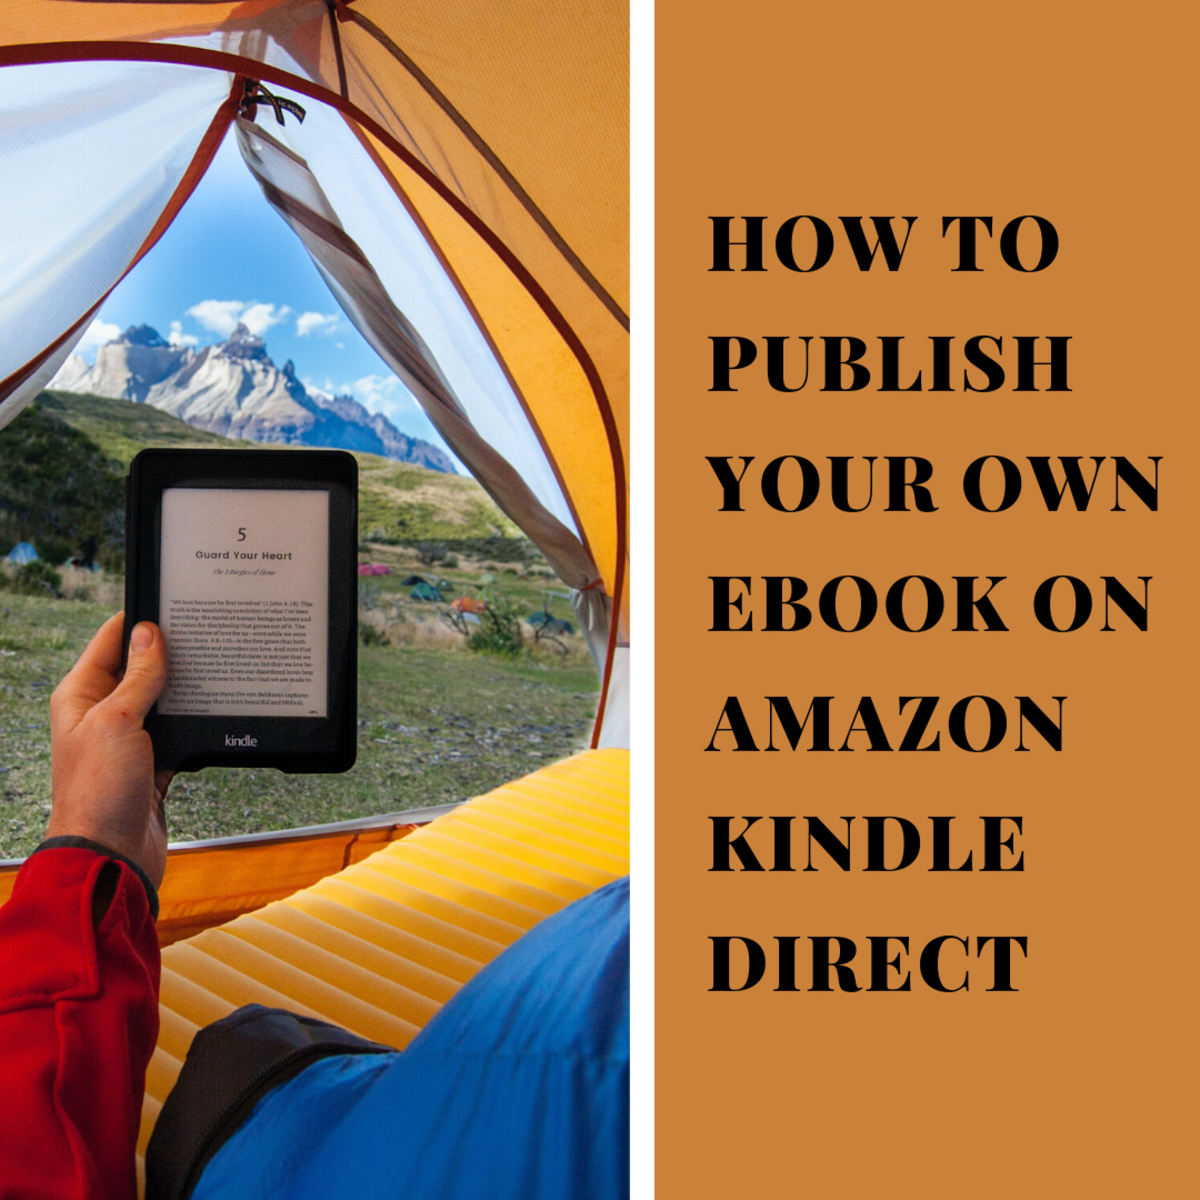 Read on to learn how to publish your own ebook on Amazon Kindle Direct.